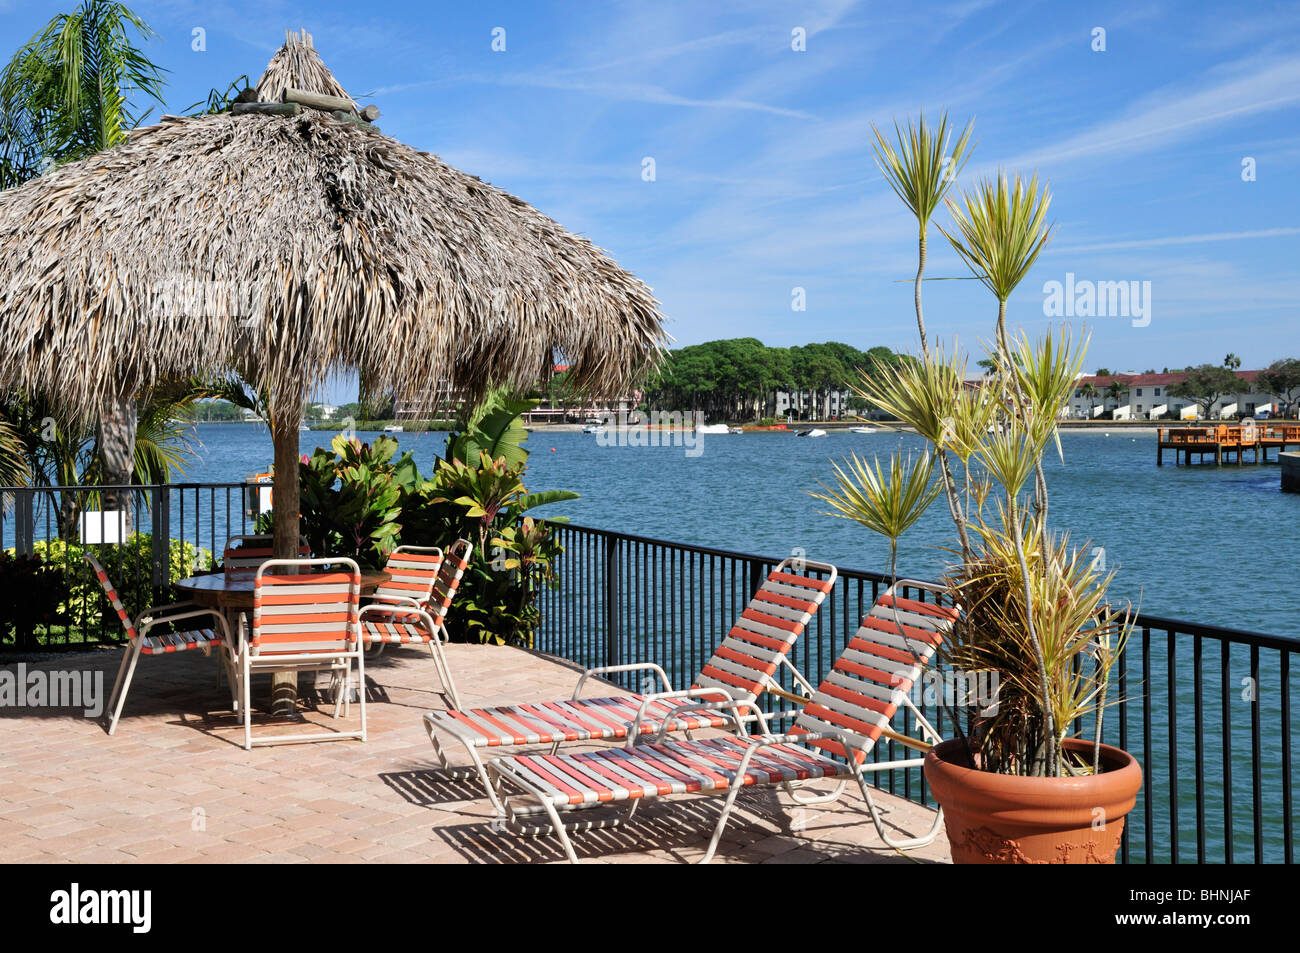 Chaise lounges, tiki roof, potted plants with a view of a Florida waterway - Stock Image